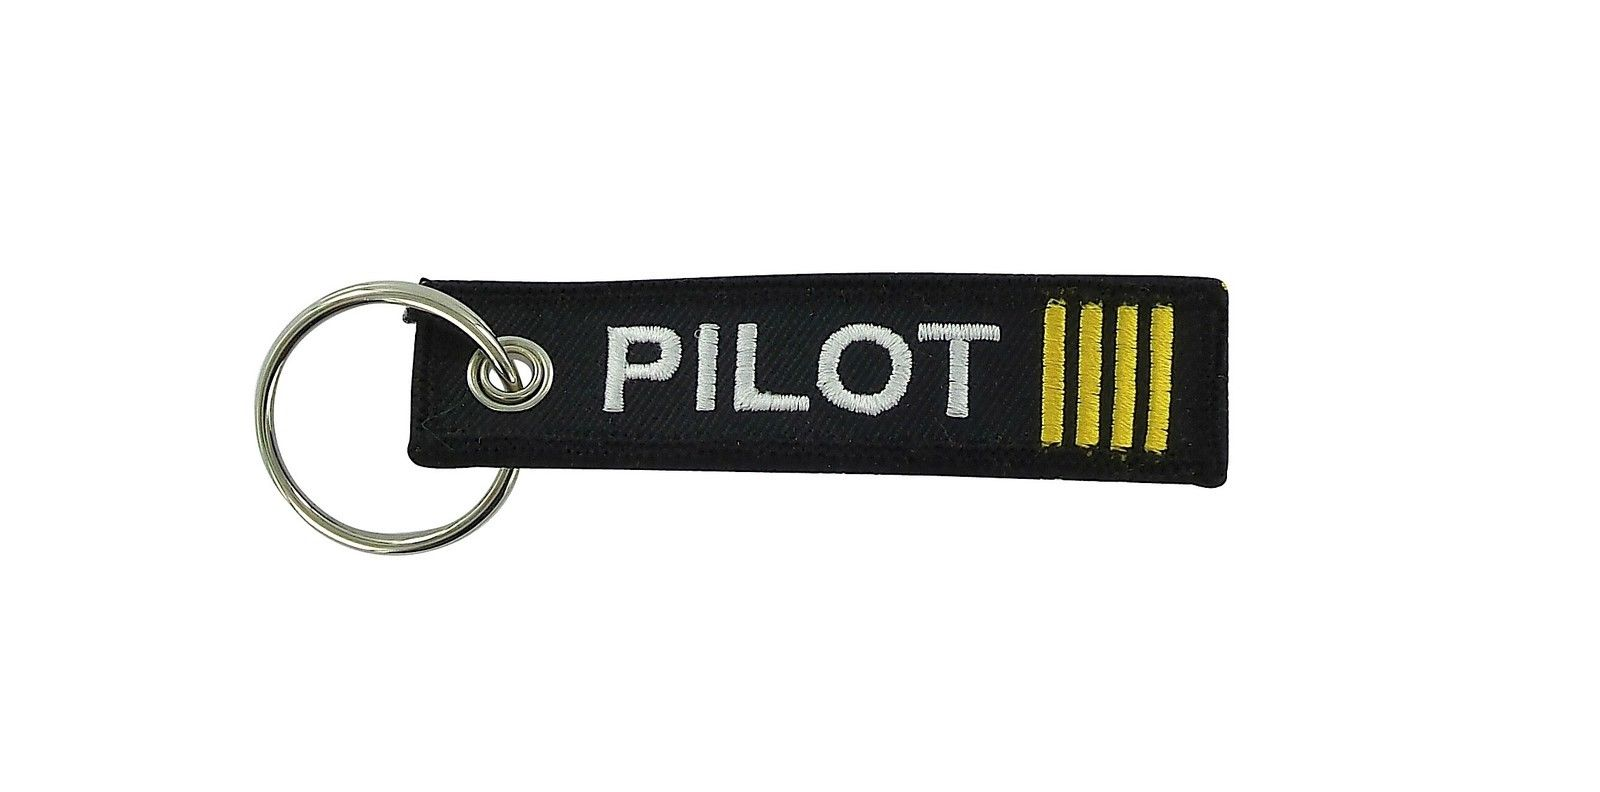 c90a299c39e  5.75 AUD - Remove Before Flight Keyring Keychain Captain Gold Crew 4 Gold Stripe  Pilot  ebay  Collectibles